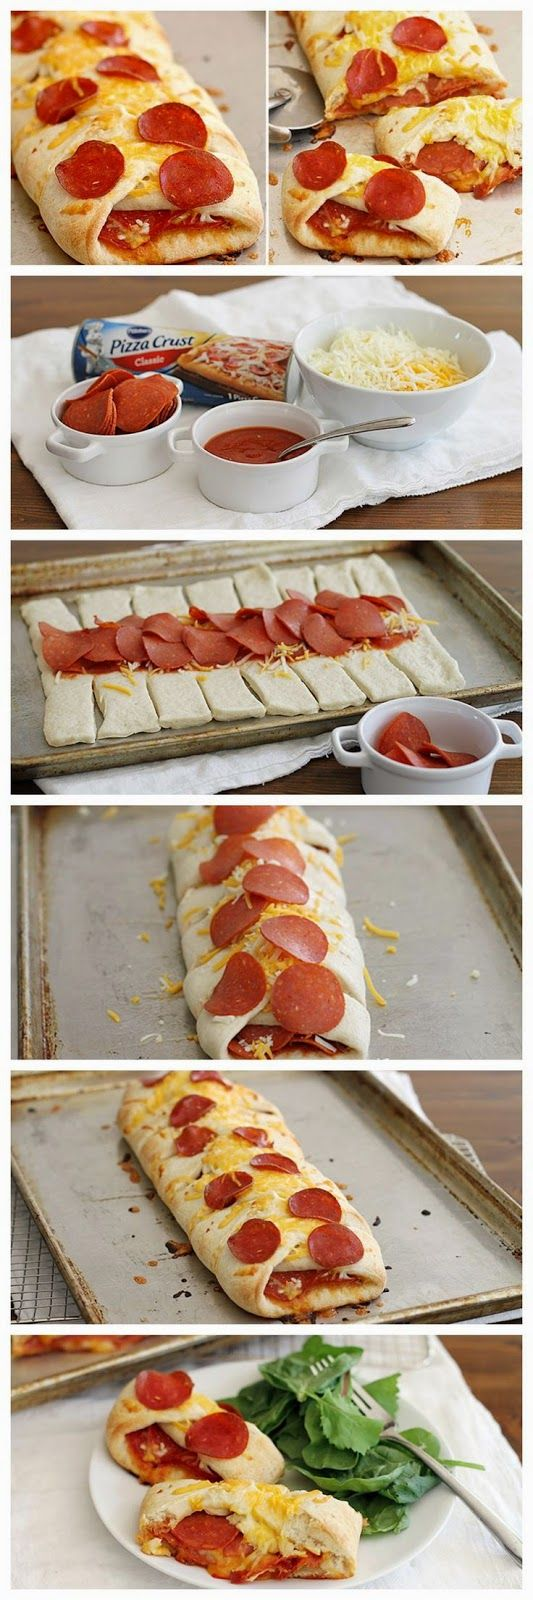 This could be a good lunch food, and it looks pretty easy to make too :)